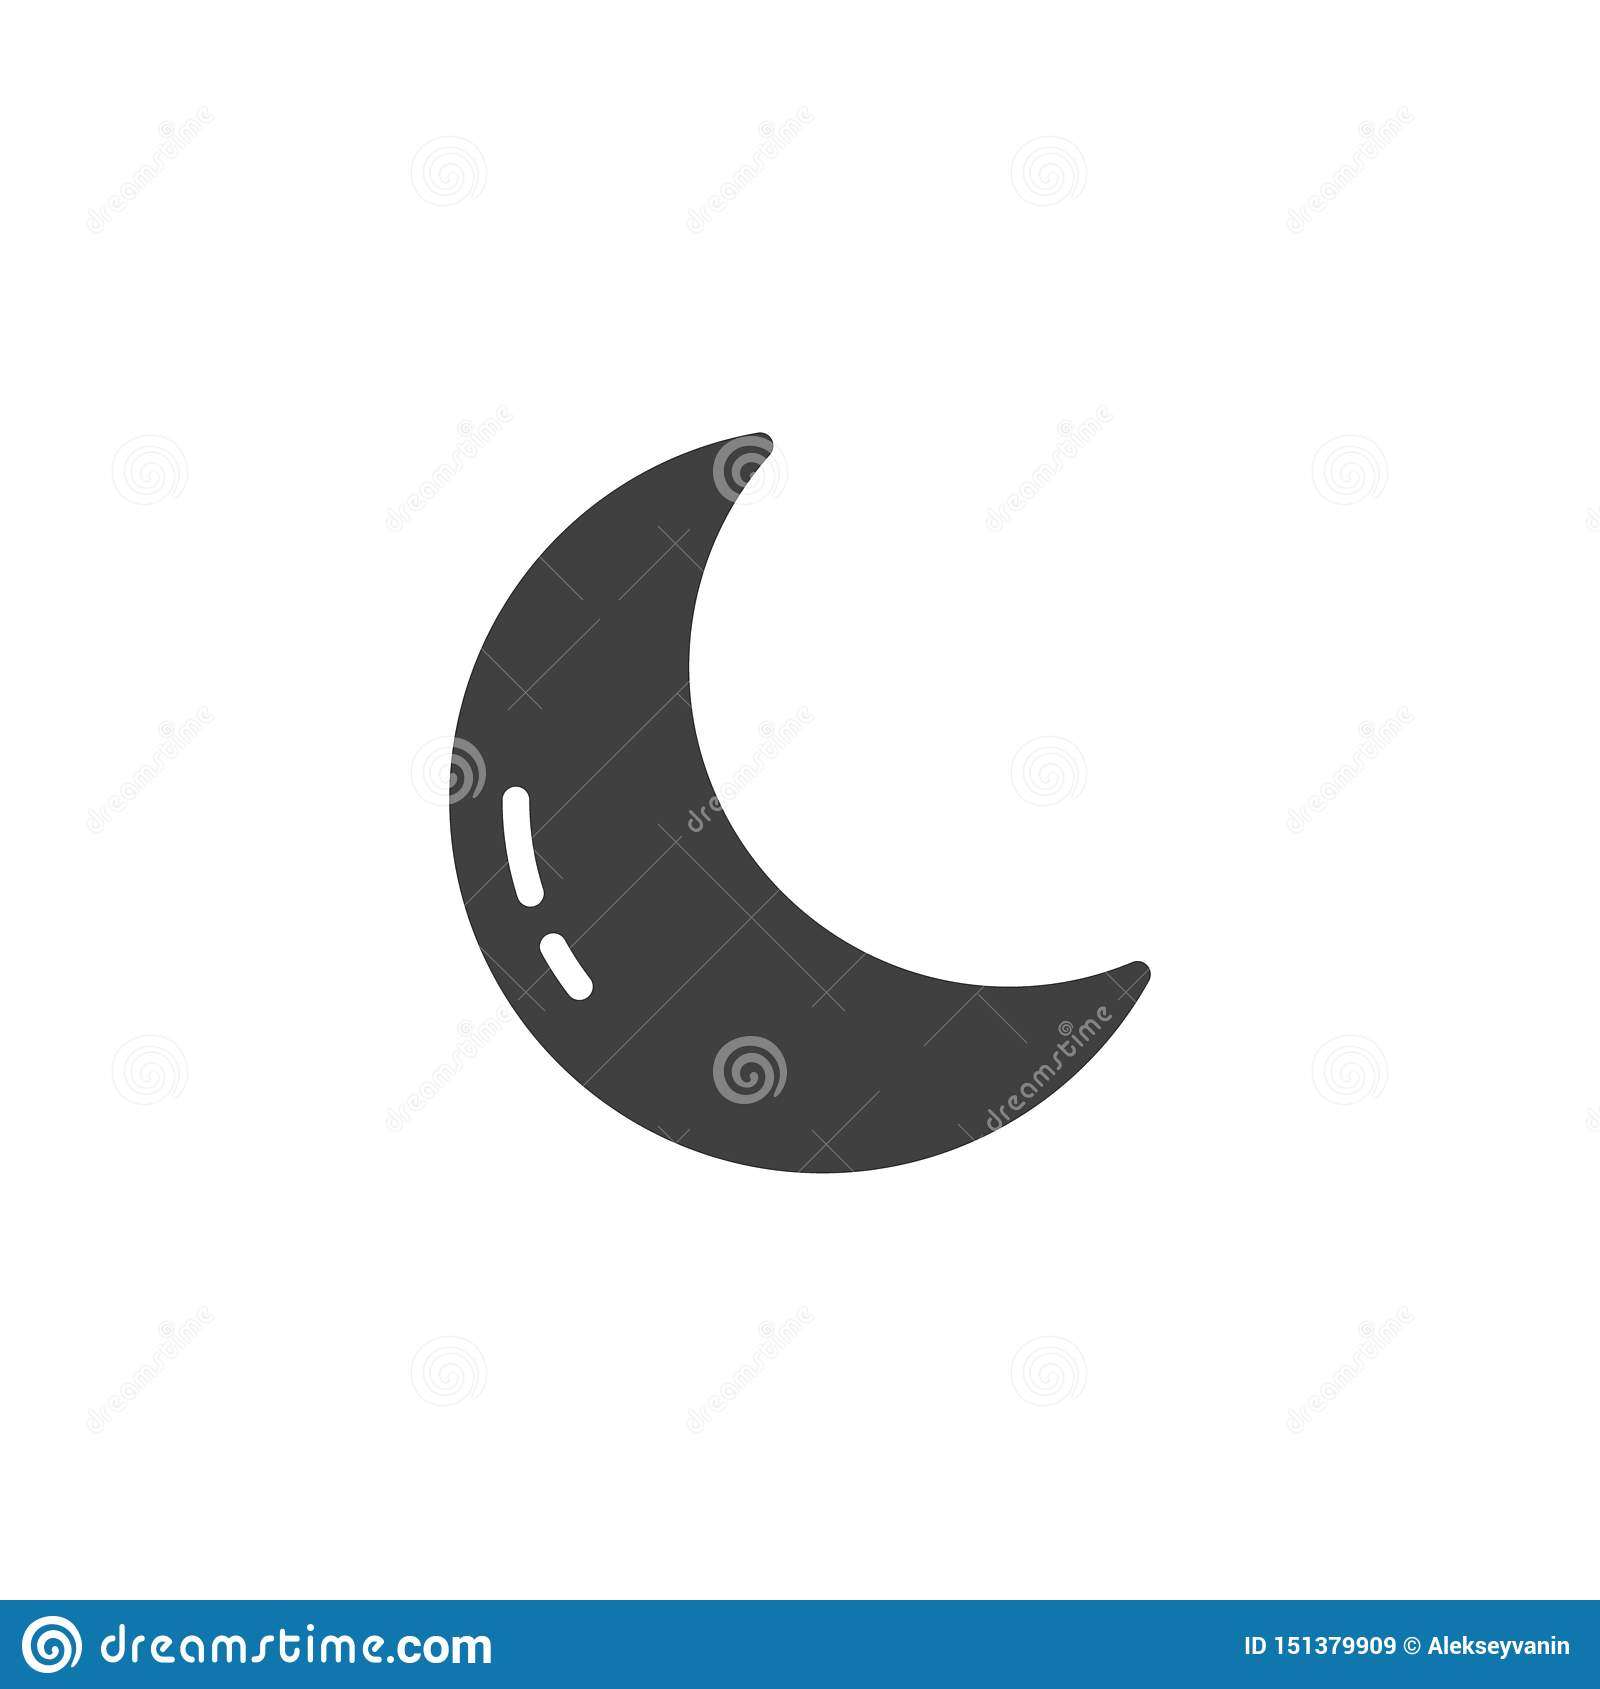 crescent moon vector icon stock vector illustration of graphics 151379909 https www dreamstime com crescent moon vector icon filled flat sign mobile concept web design clear night weather glyph icon forecast weather image151379909